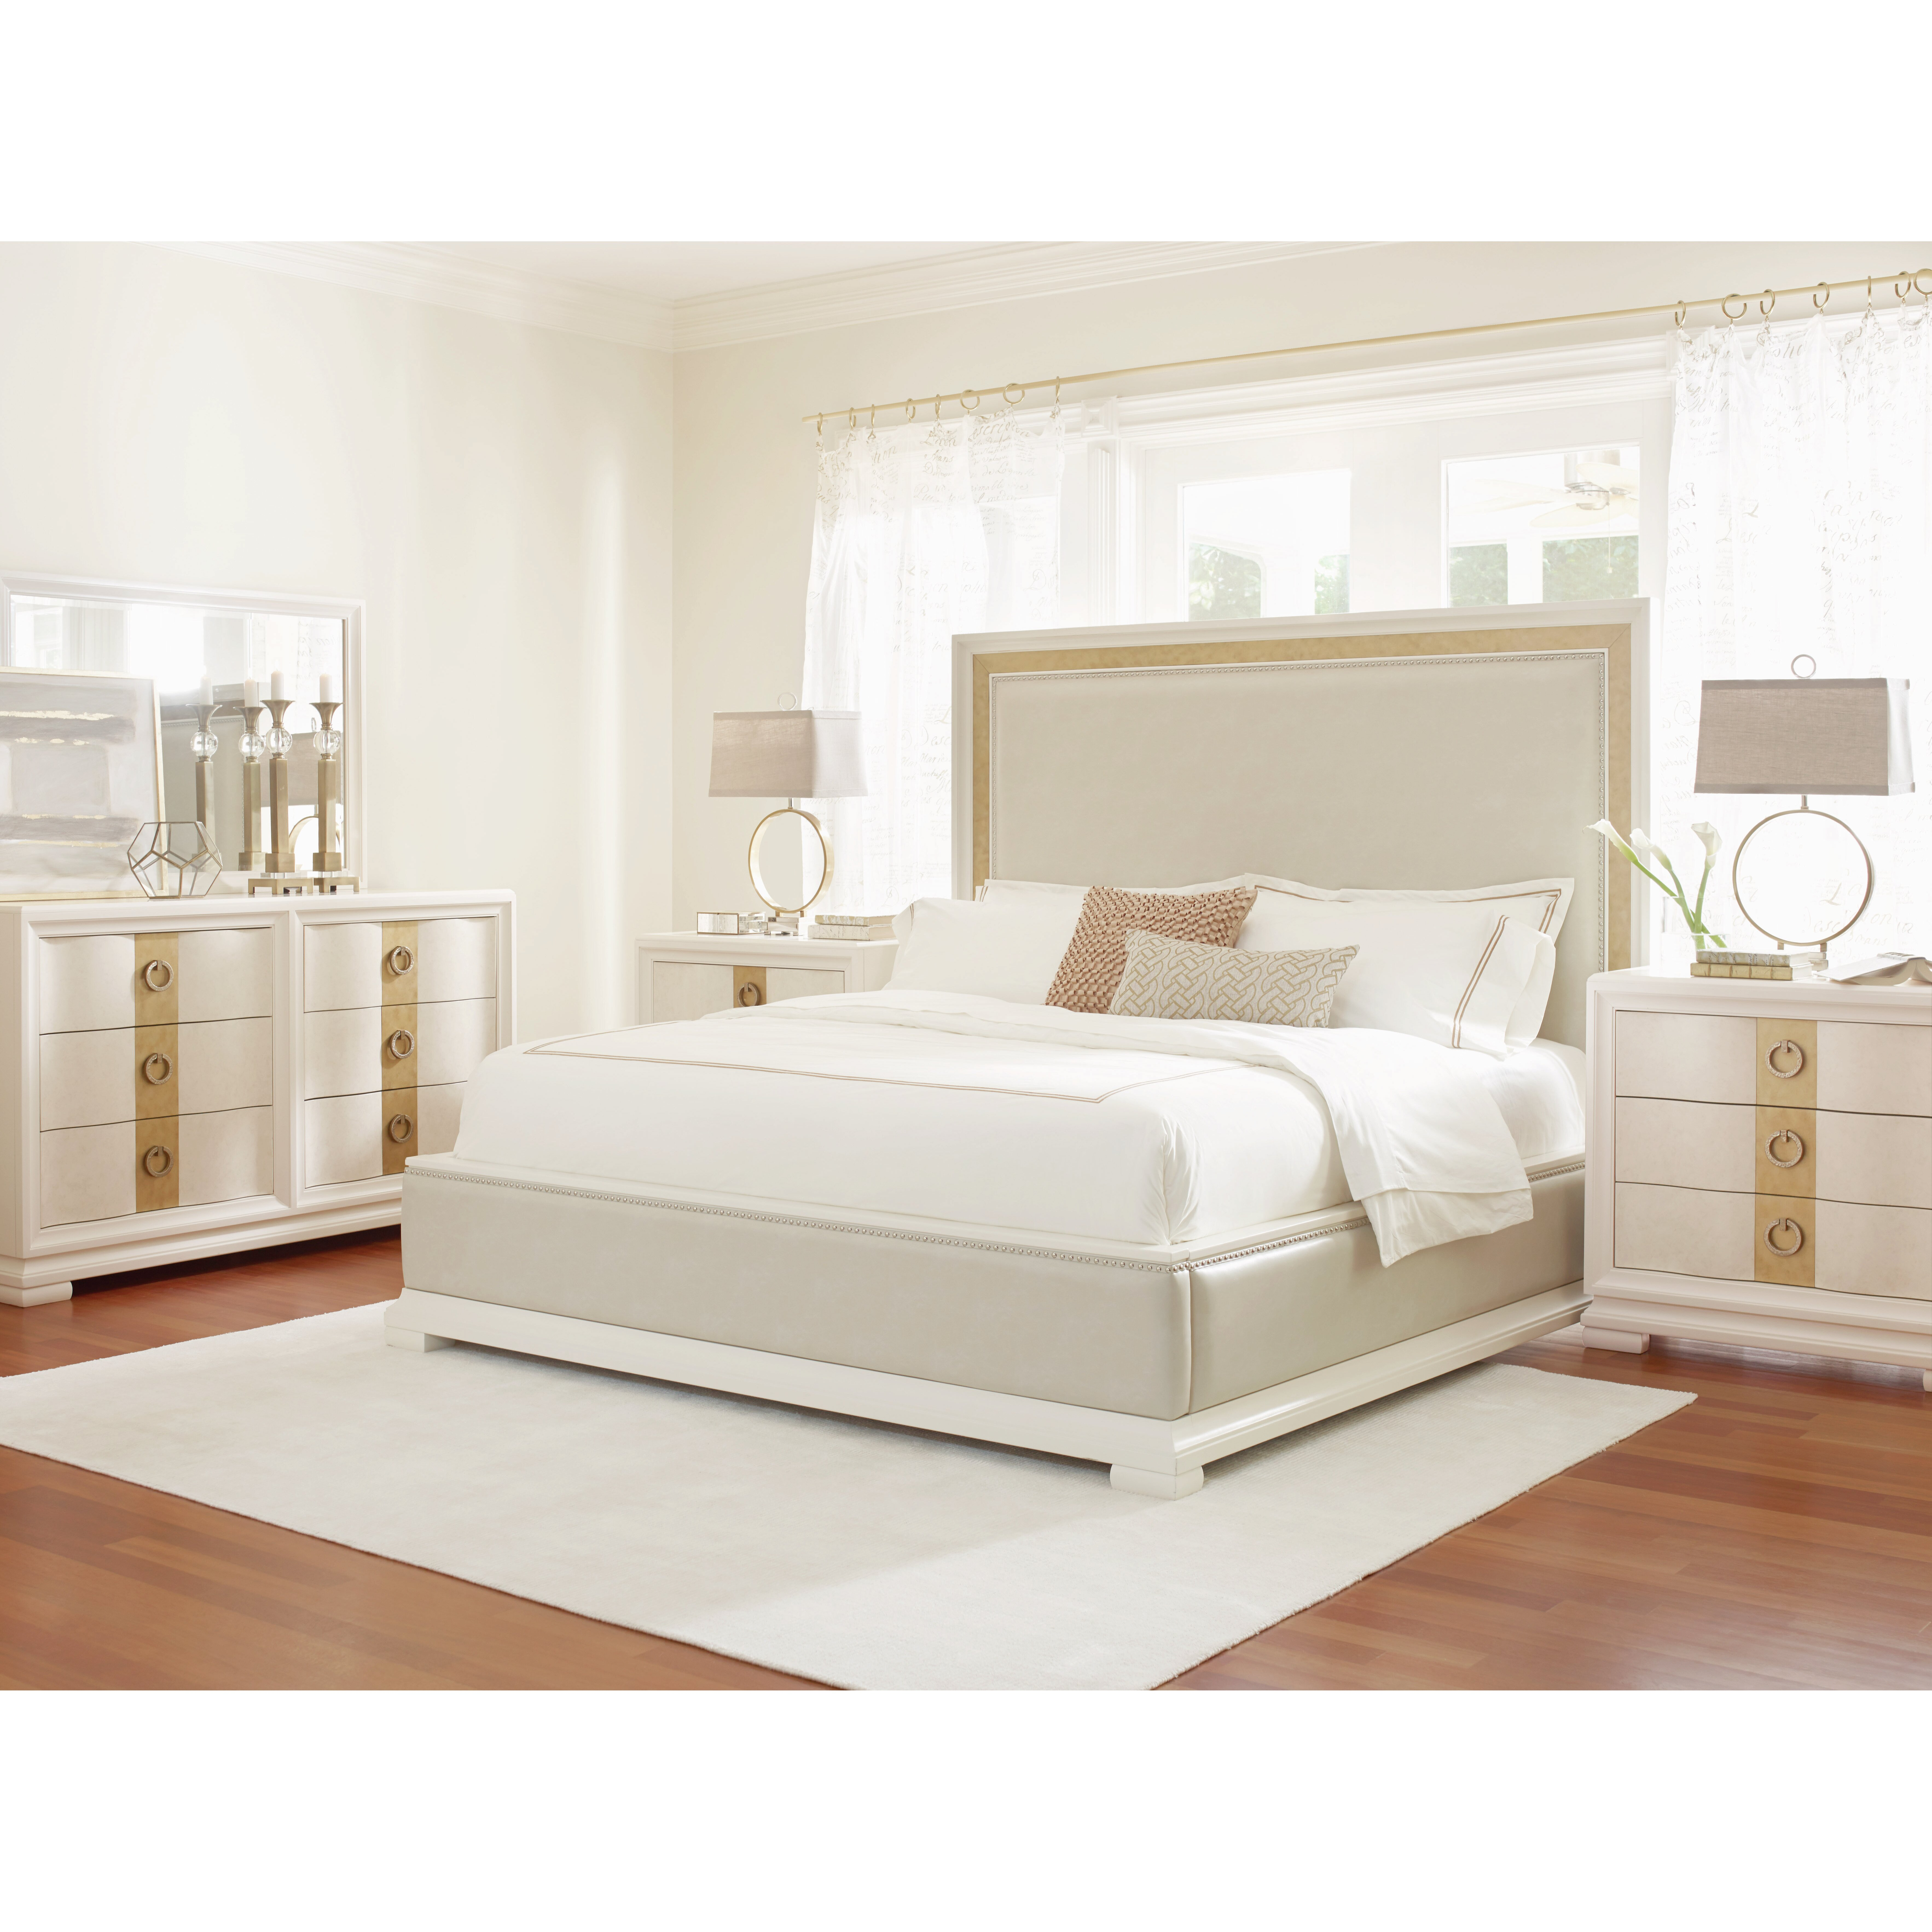 Legacy classic furniture tower suite upholstered panel bed for Legacy classic bed